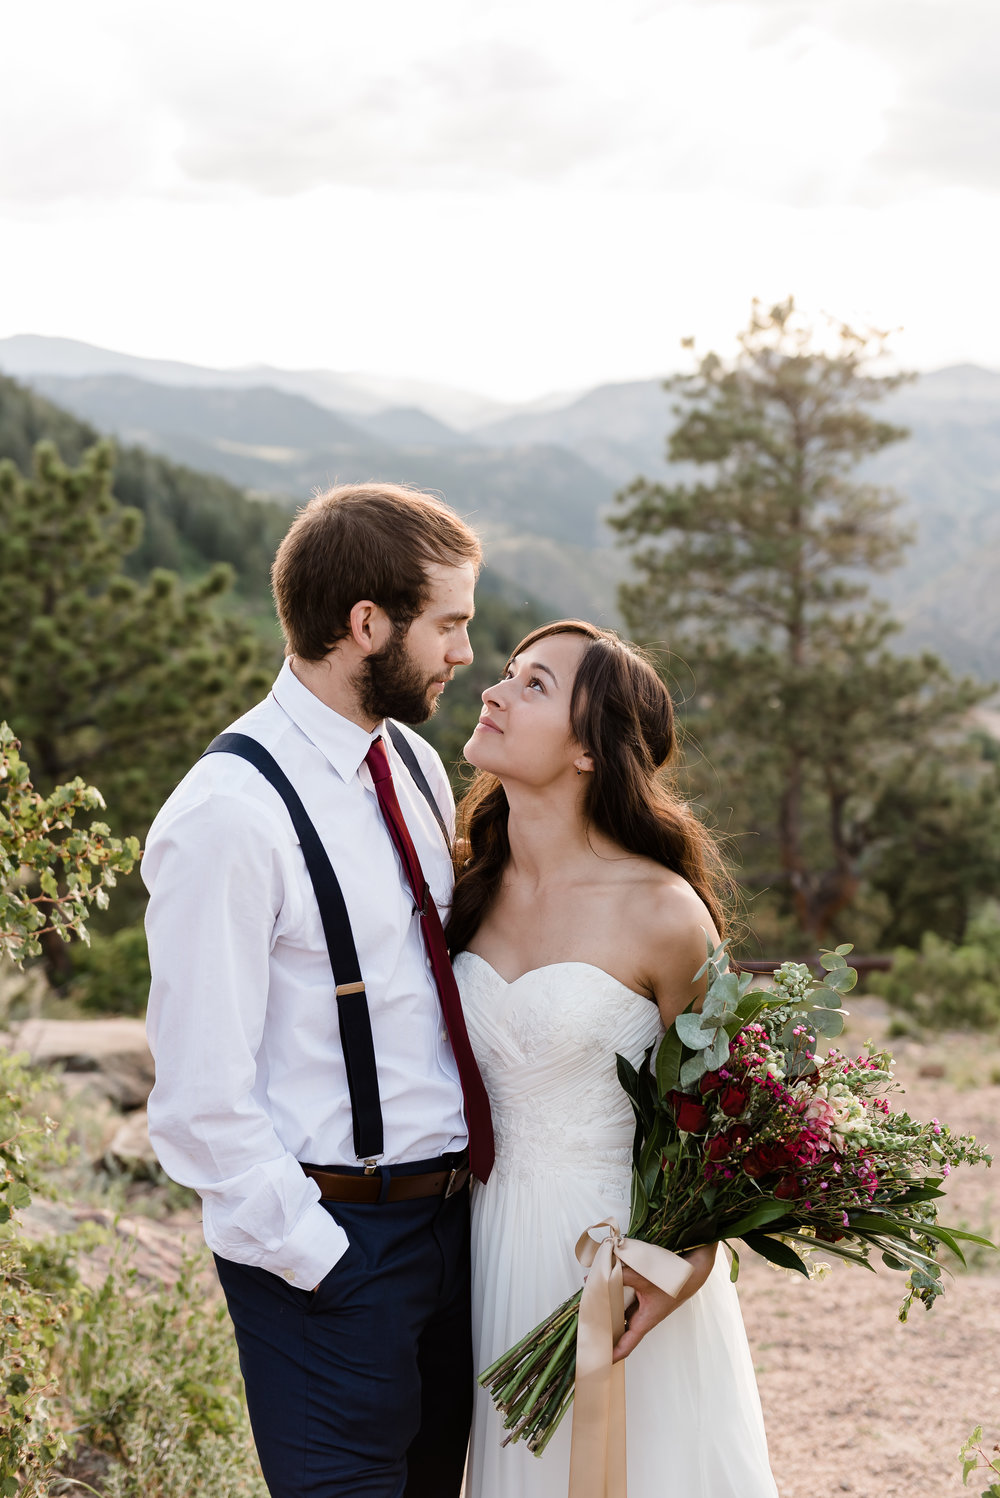 Tashina and Nate - Newlyweds-15.jpg